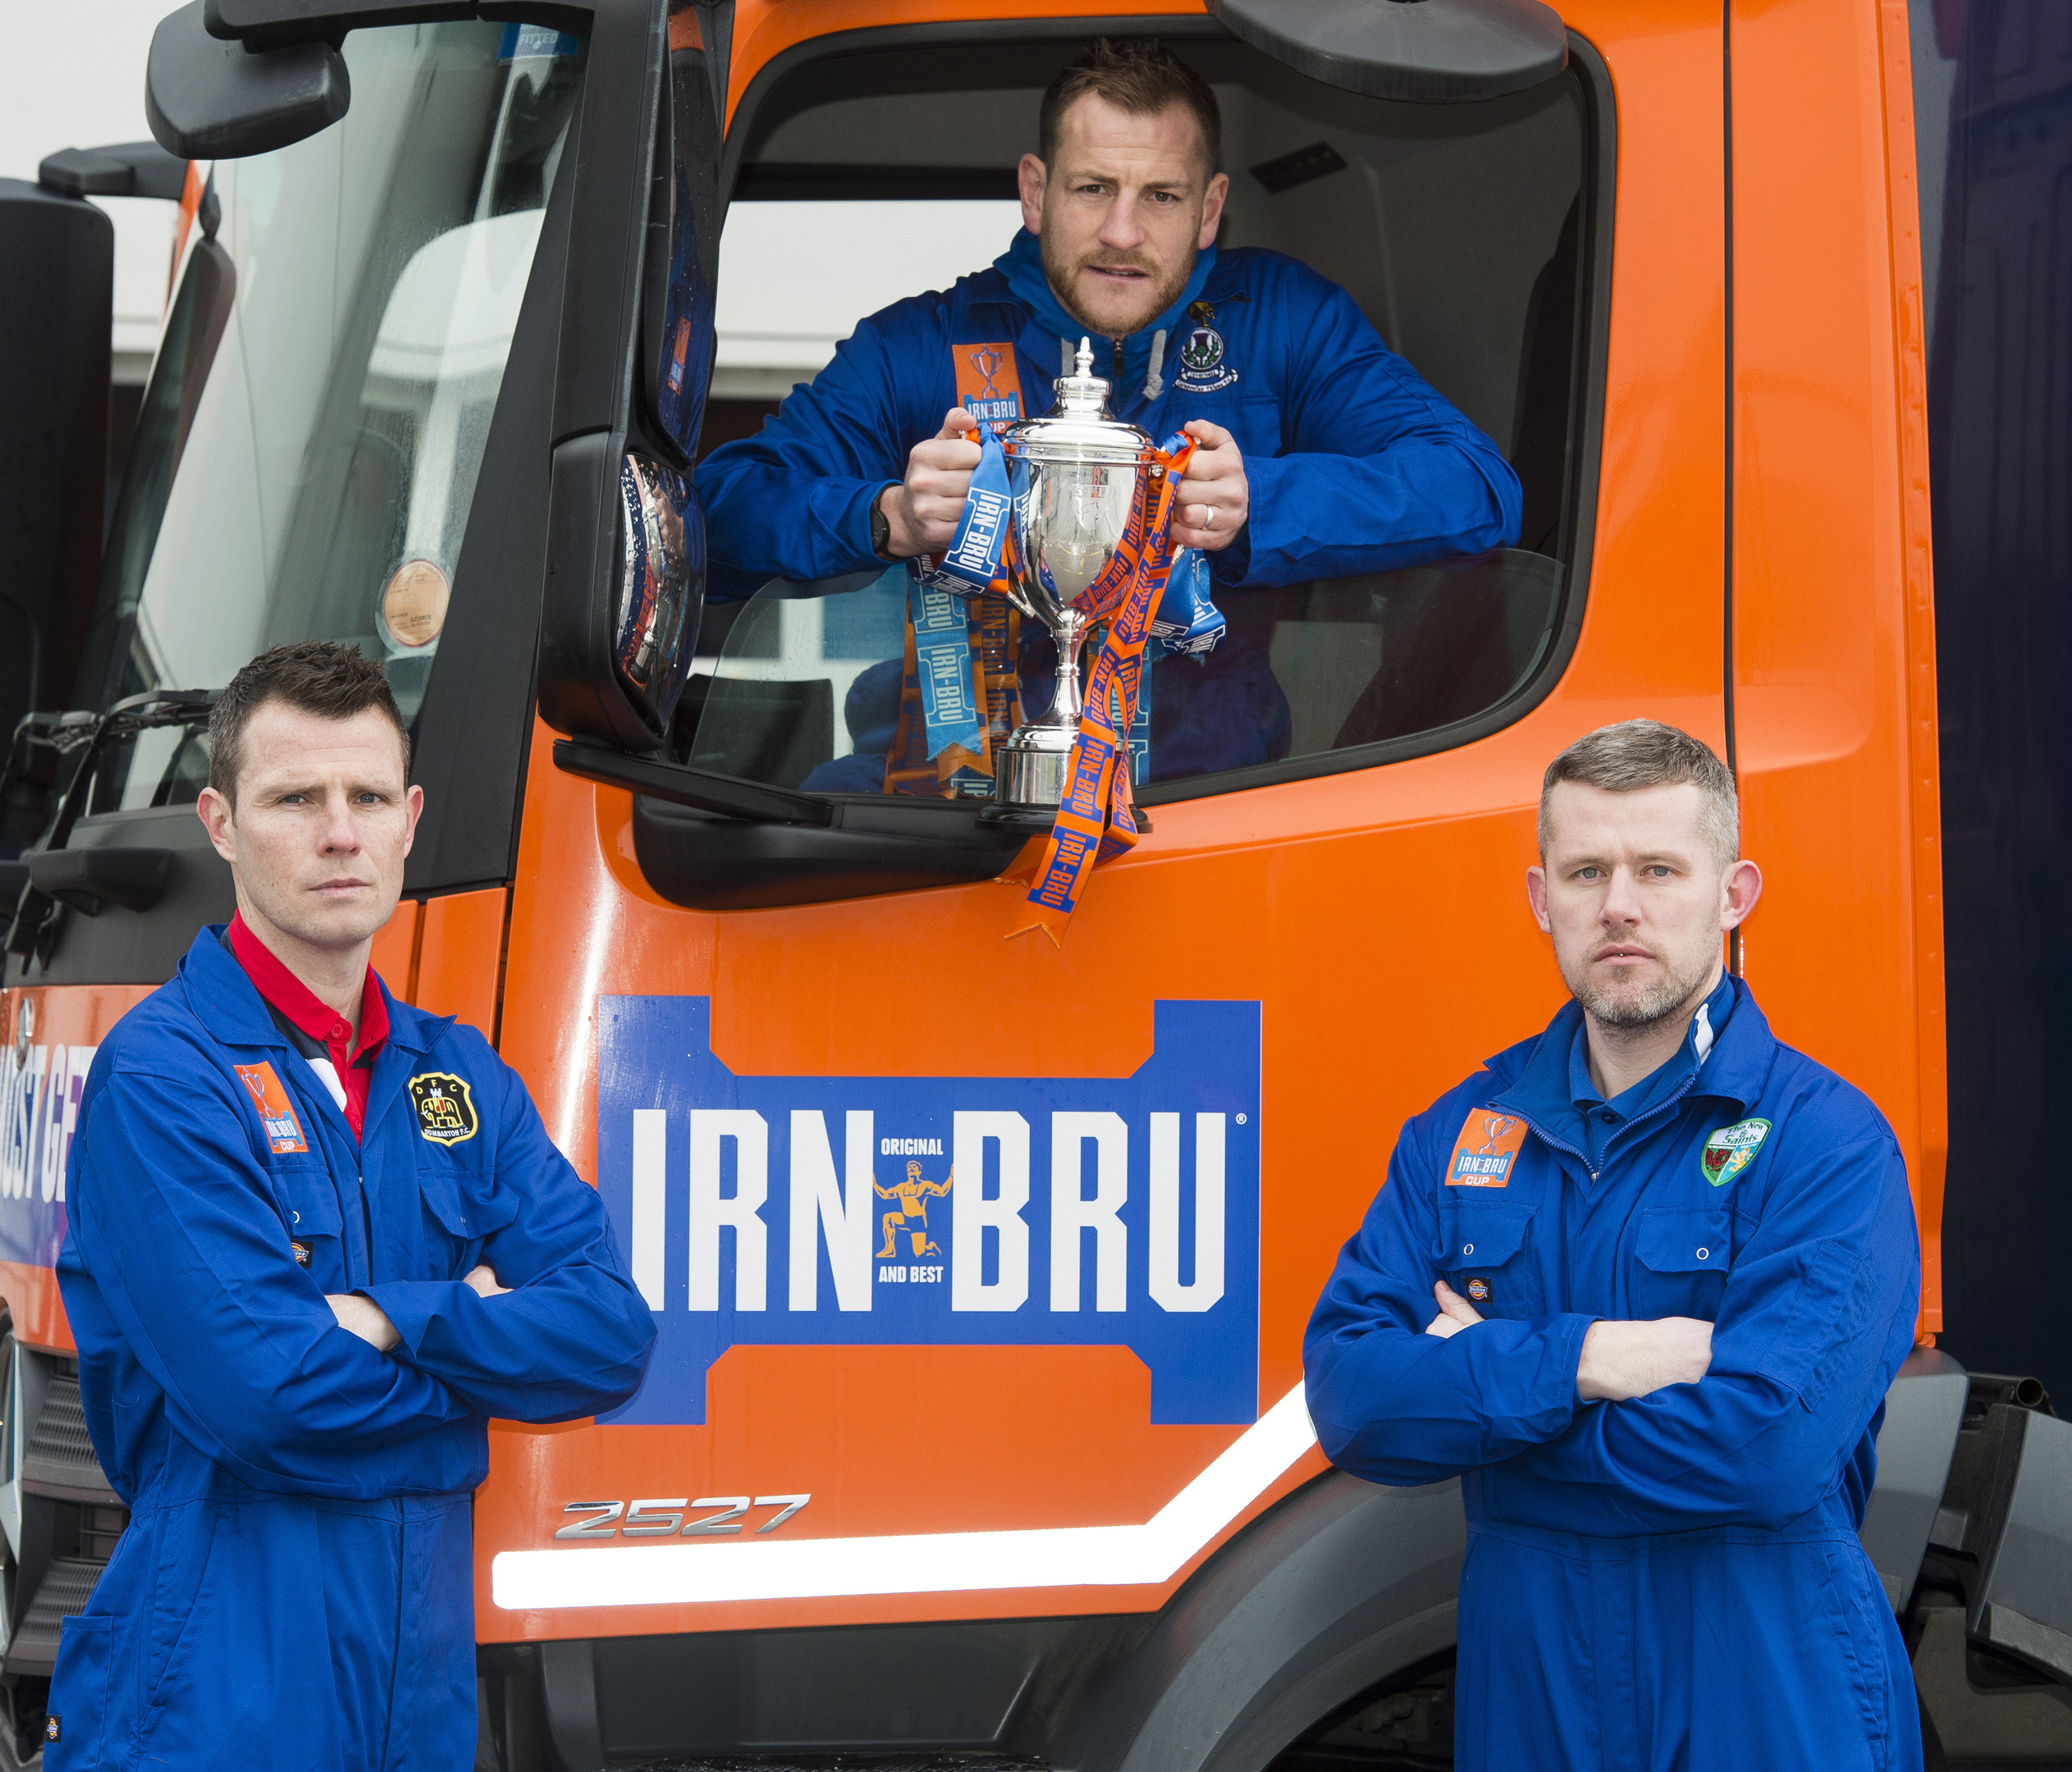 Dumbarton's Andy Dowie, Inverness CT's Gary Warren, and TNS's Paul Harrison.